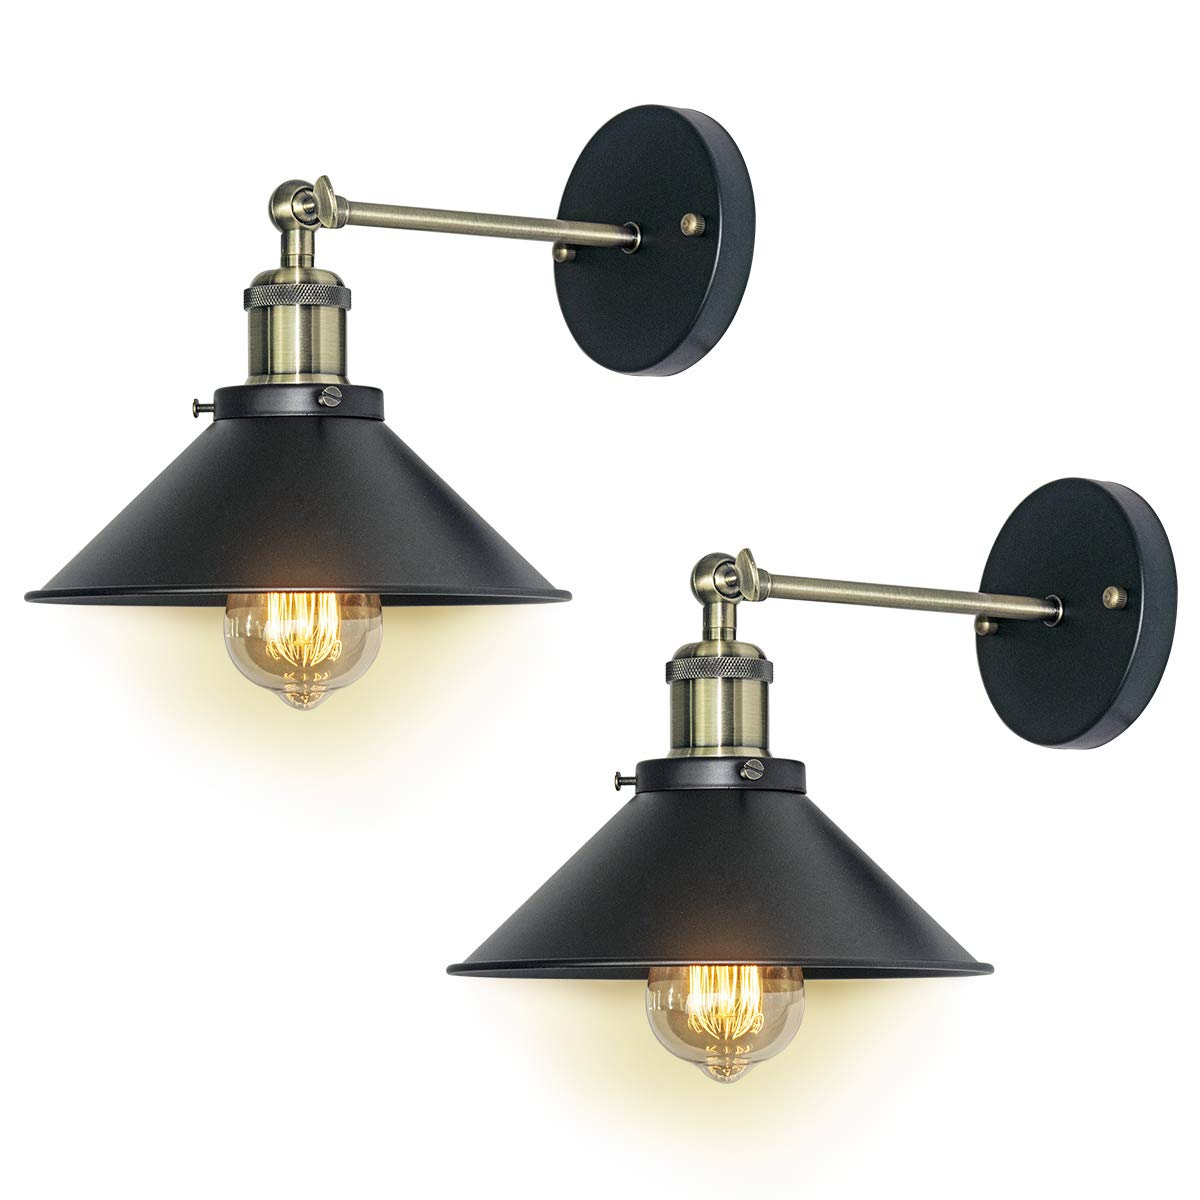 E26/E27/base black Industrial Vintage Edison Wall Lamp Fixture Simplicity Steel Finished Wall Ceiling Lamp locuss Wall Sconces Light 2/Packs Bulb Not included